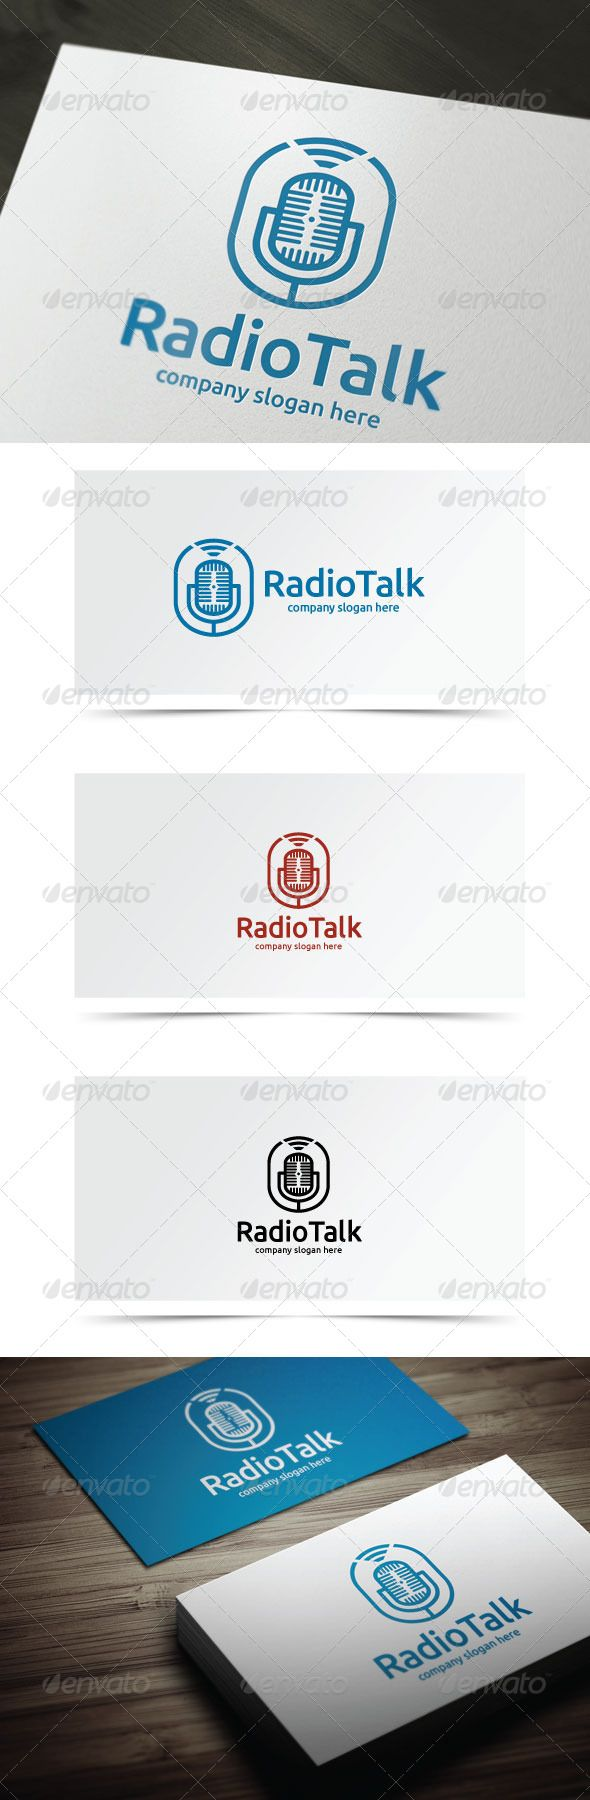 Radio Talk — Vector EPS #talk #online • Available here → https://graphicriver.net/item/radio-talk/8148227?ref=pxcr